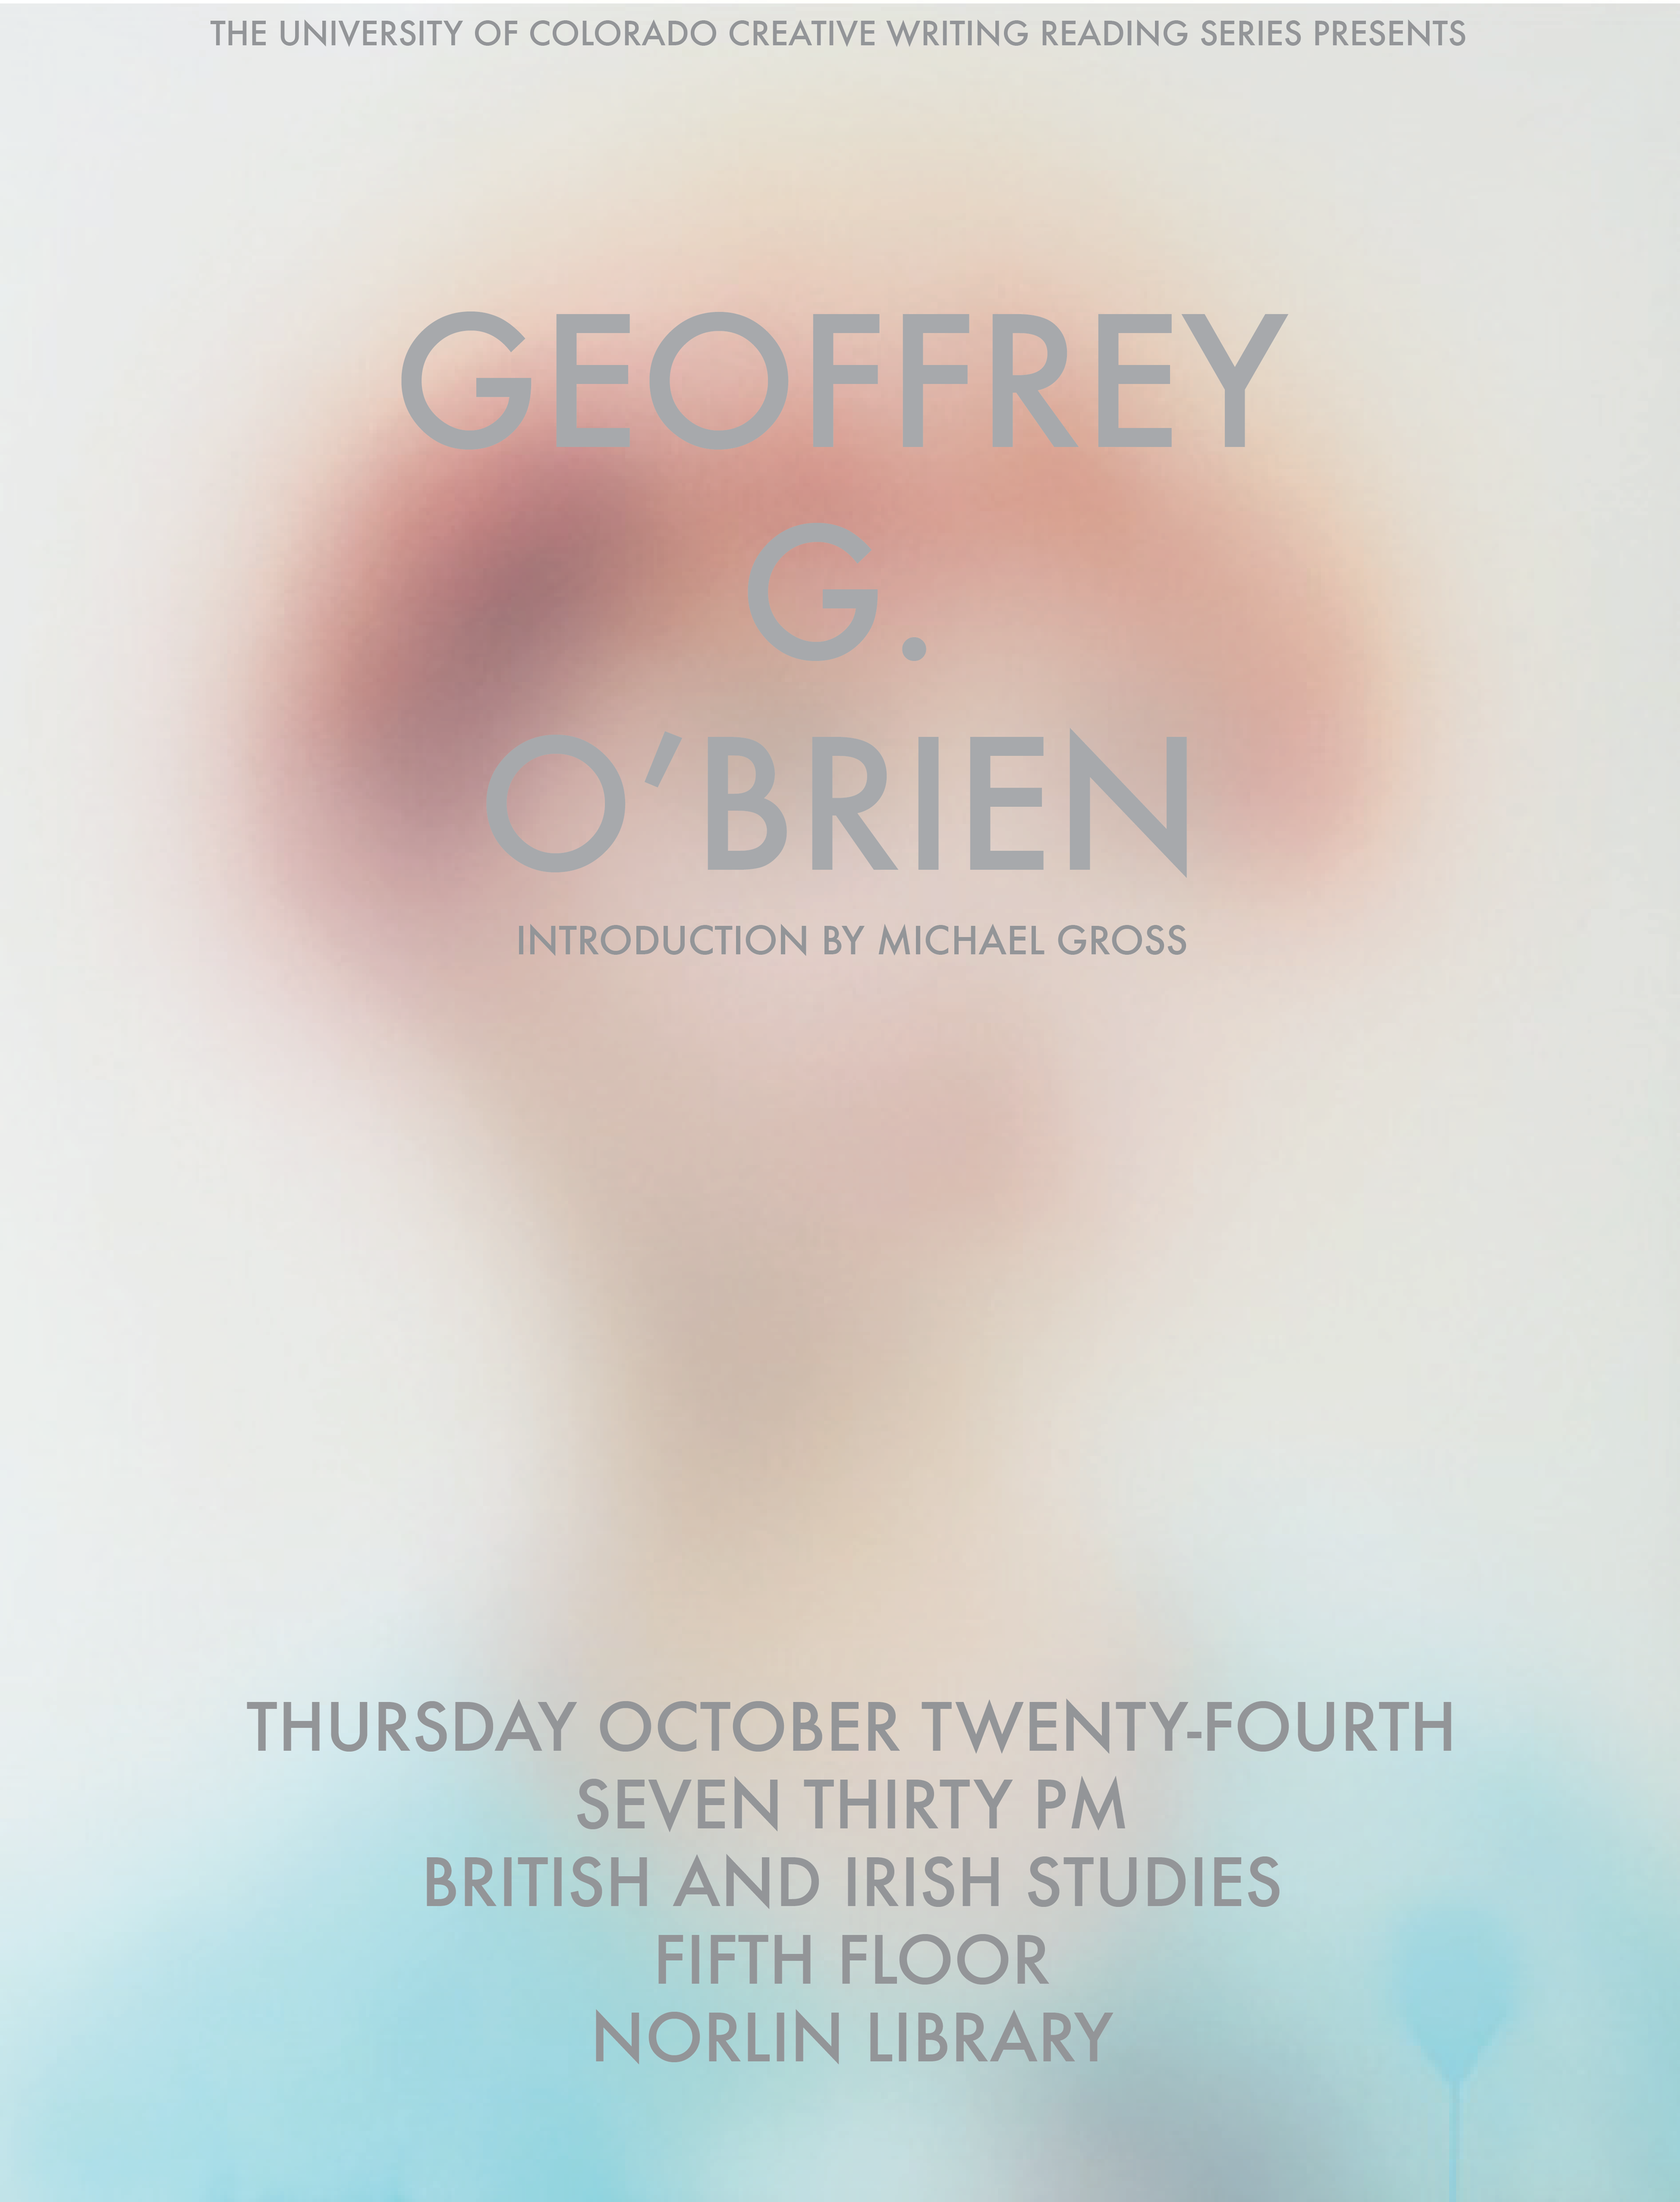 University of Colorado Boulder Creative Writing Reading Series publicity poster, Geoffrey G. O'Brien.